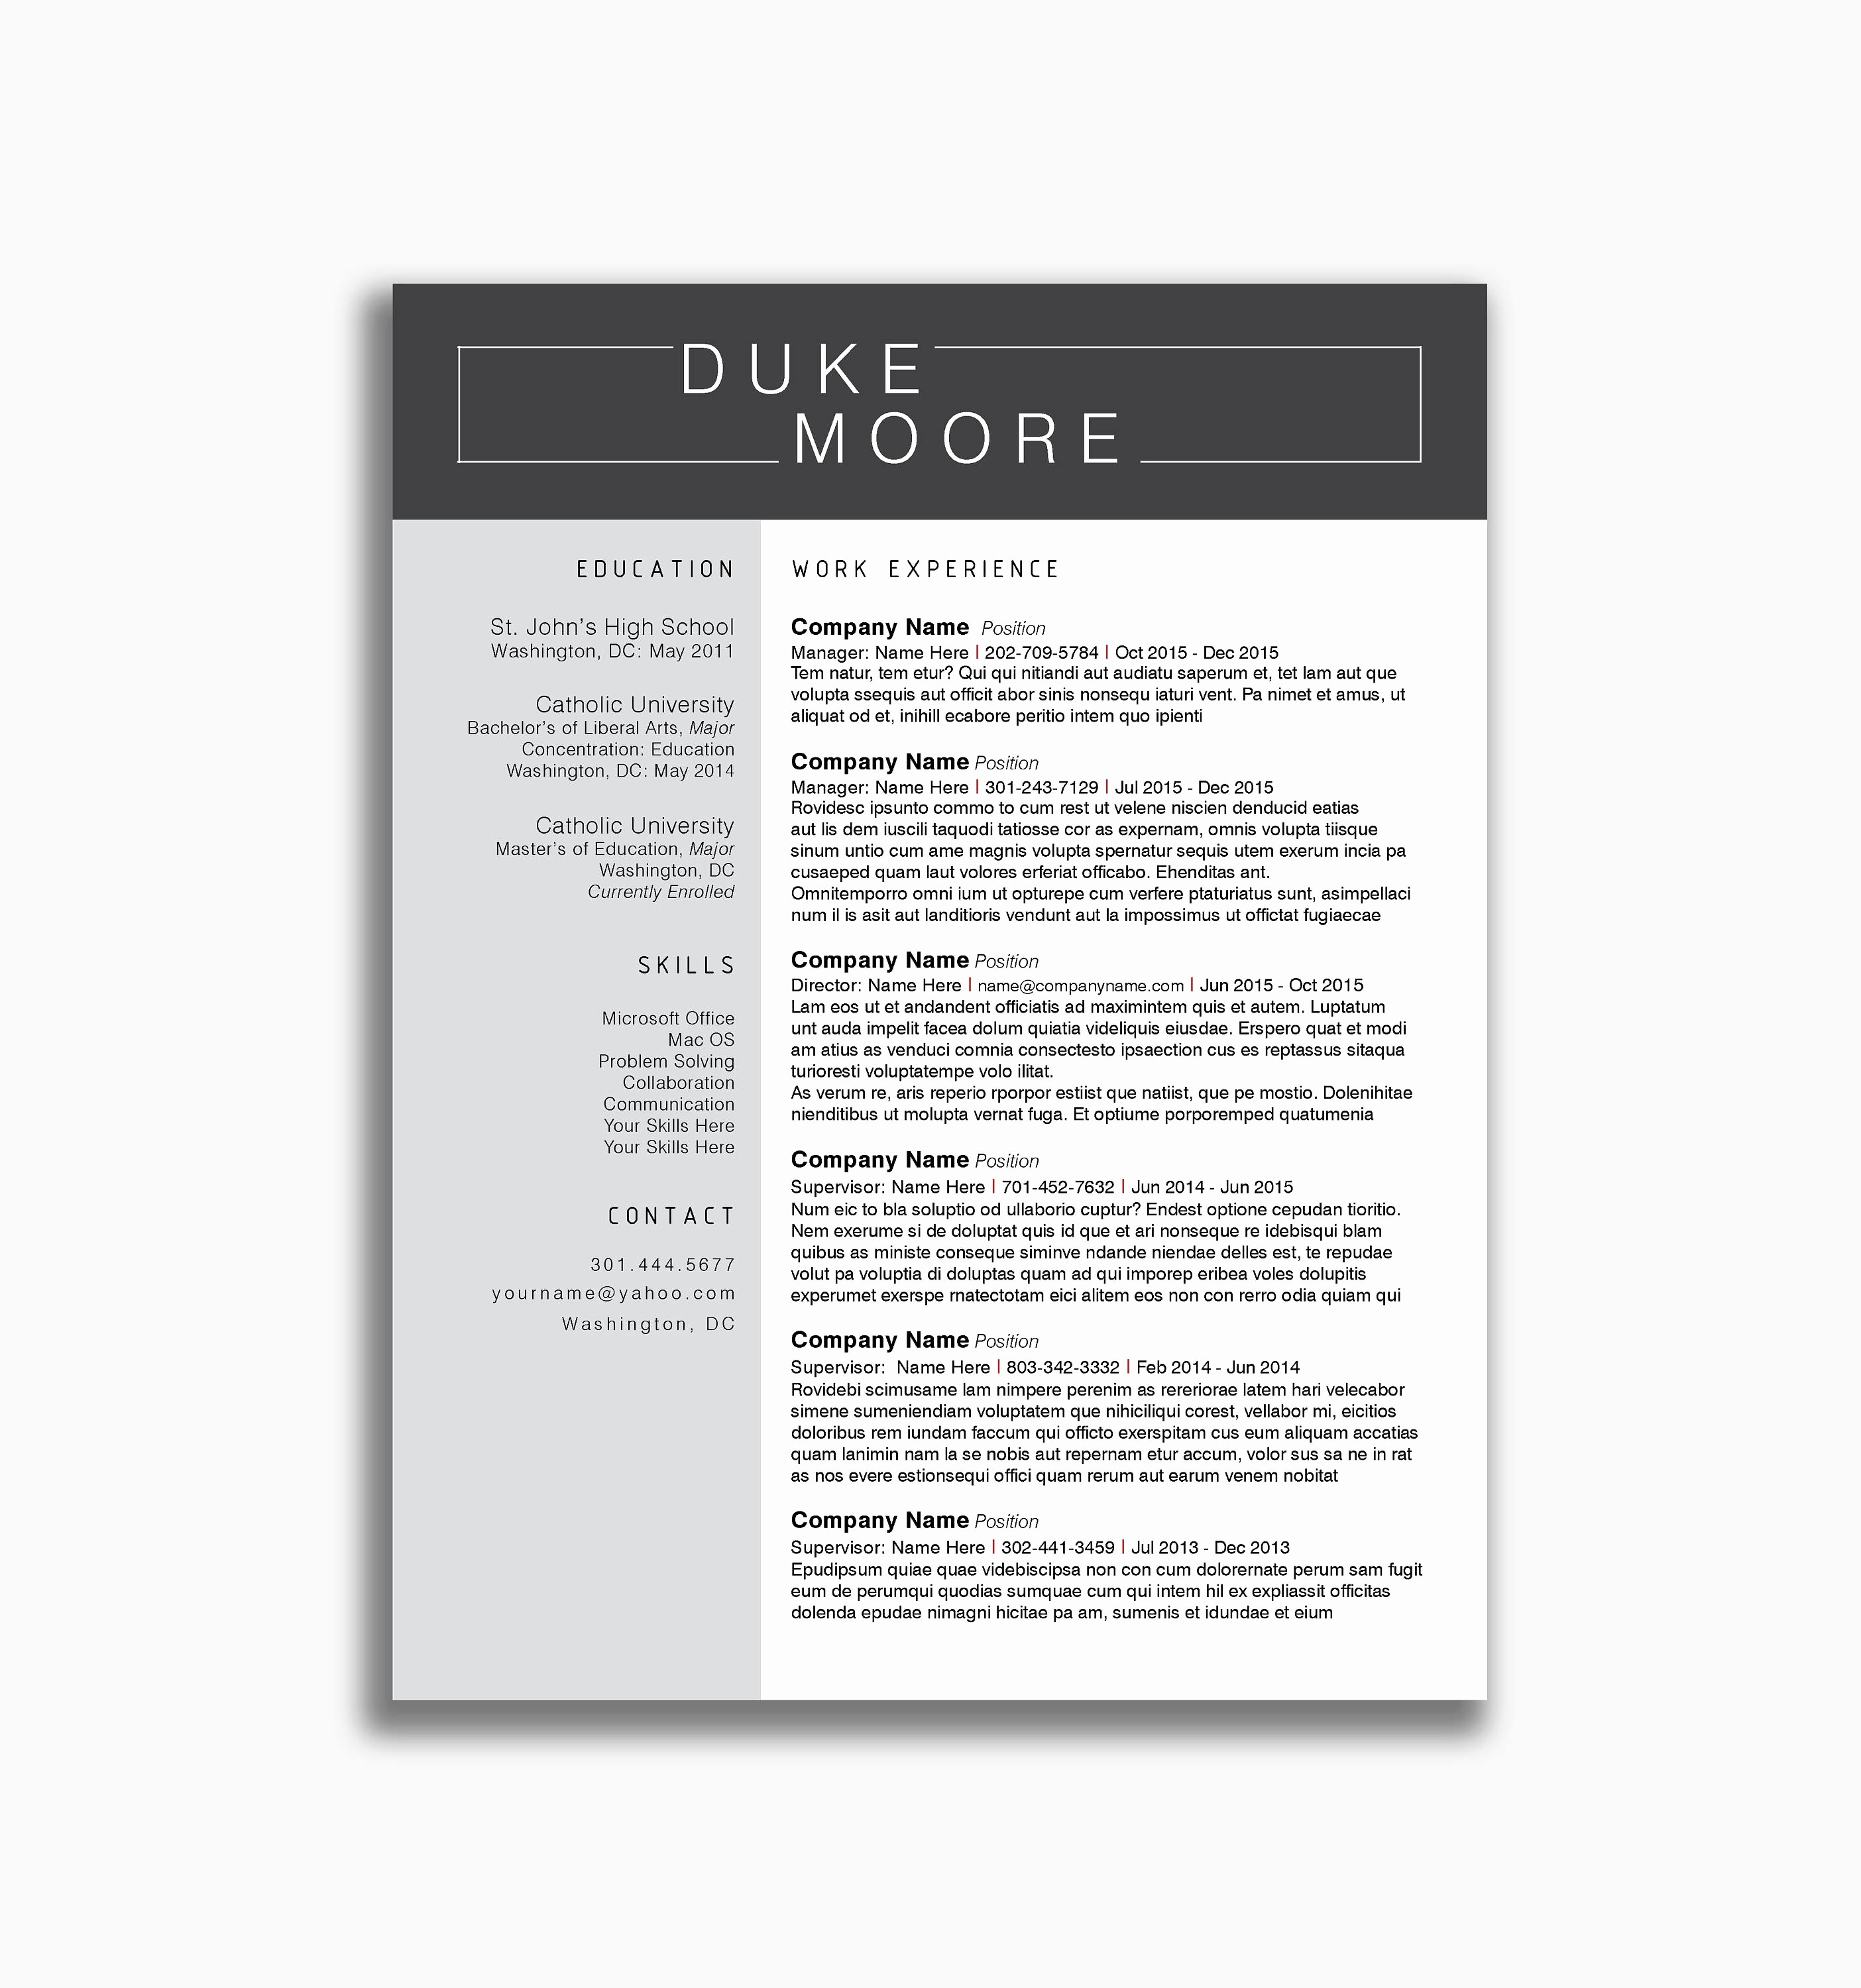 Music Business Resume Template - Music Resume Template Awesome 47 Fresh Ministry Resume Templates